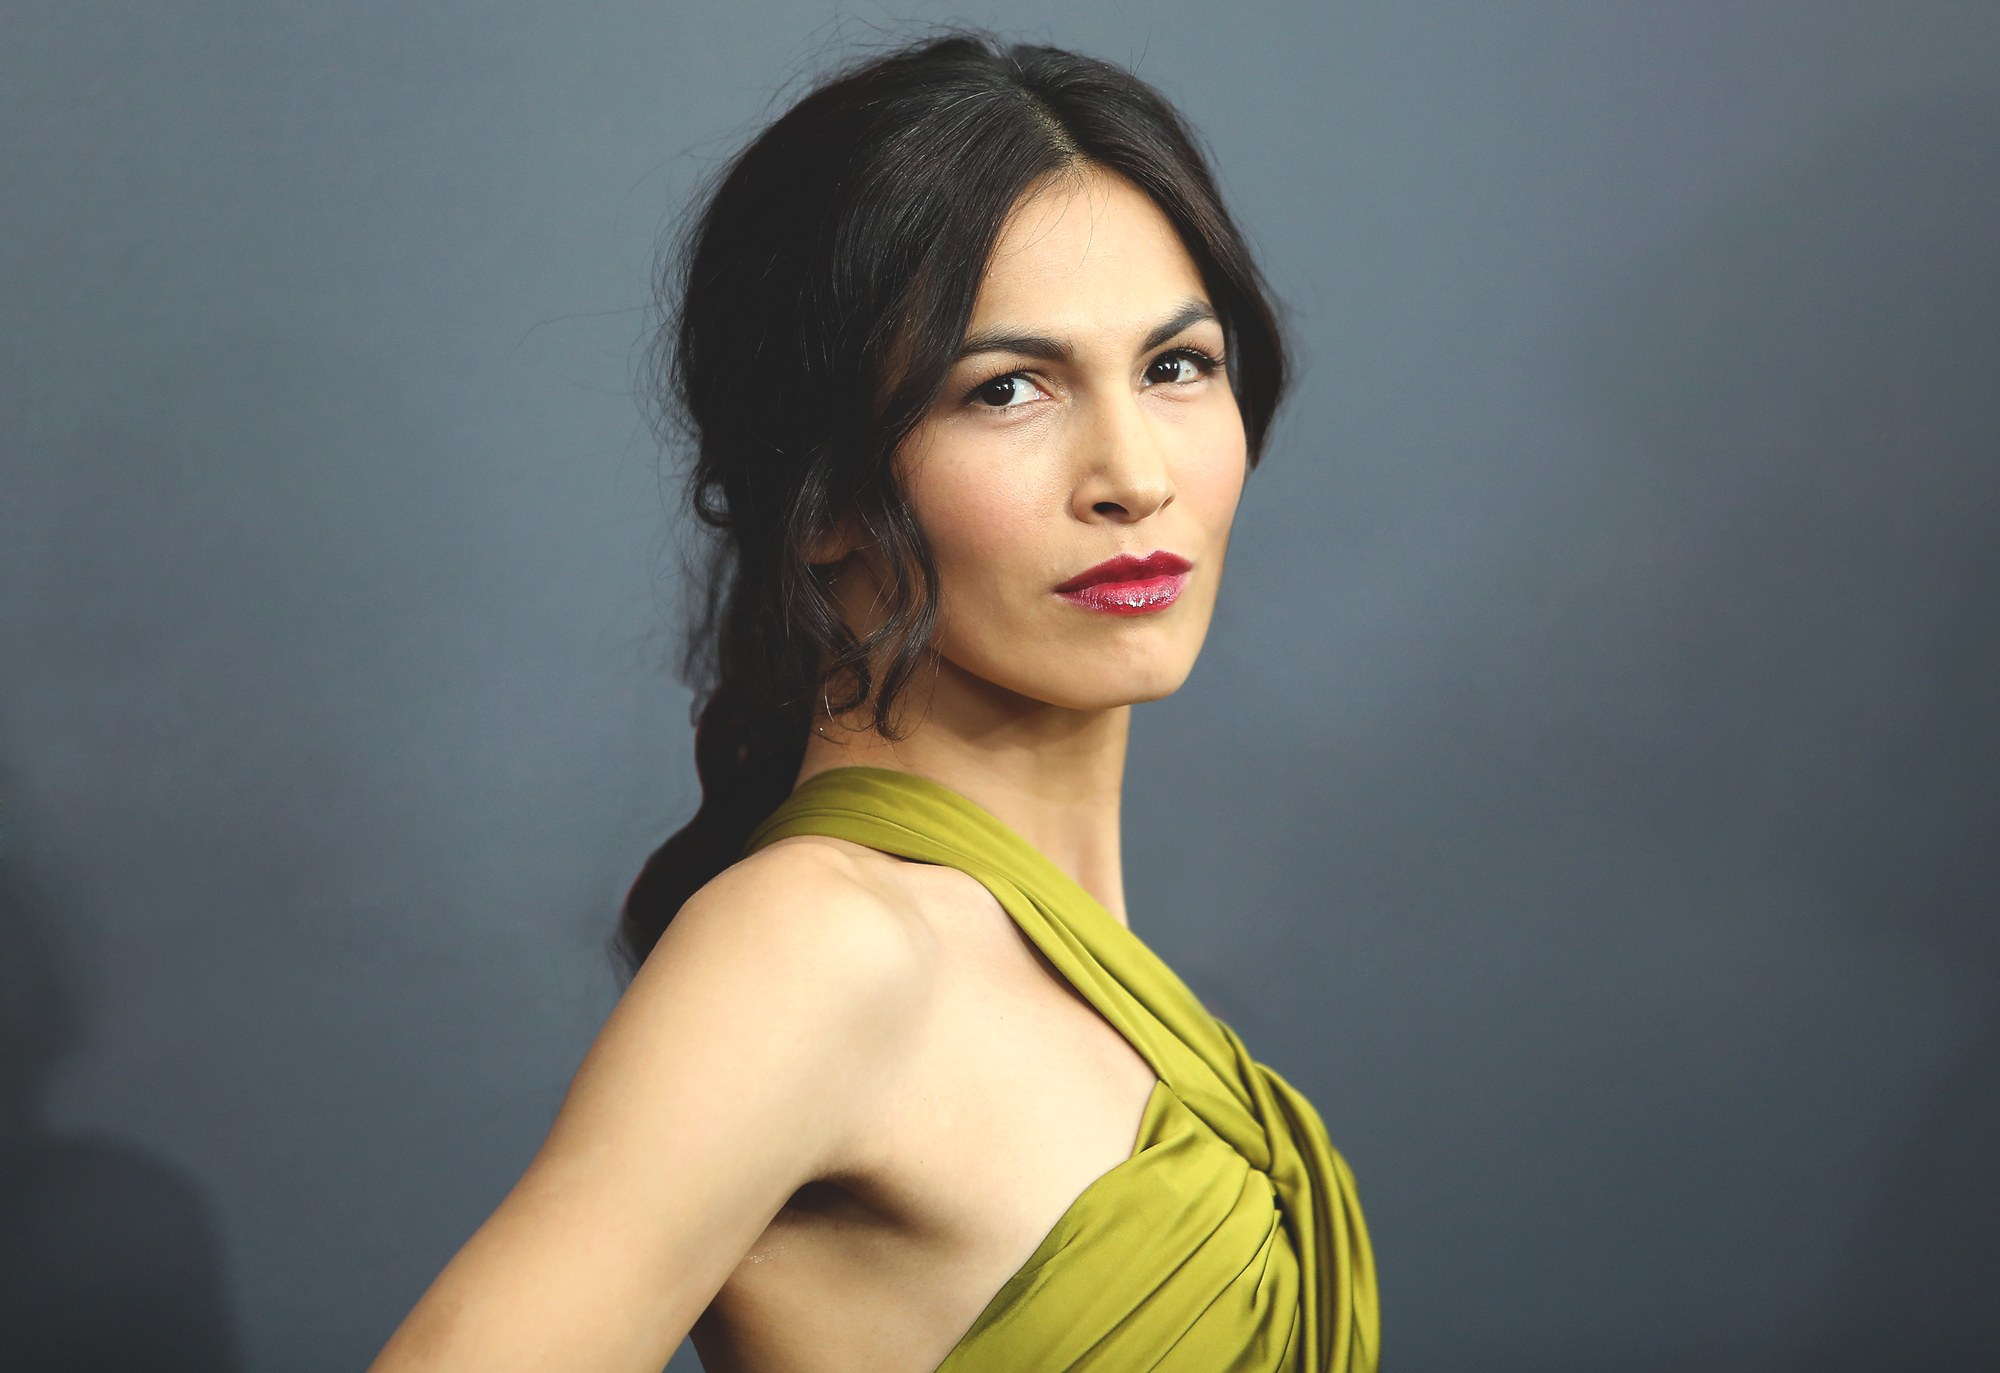 2000x1373 - Elodie Yung Wallpapers 8